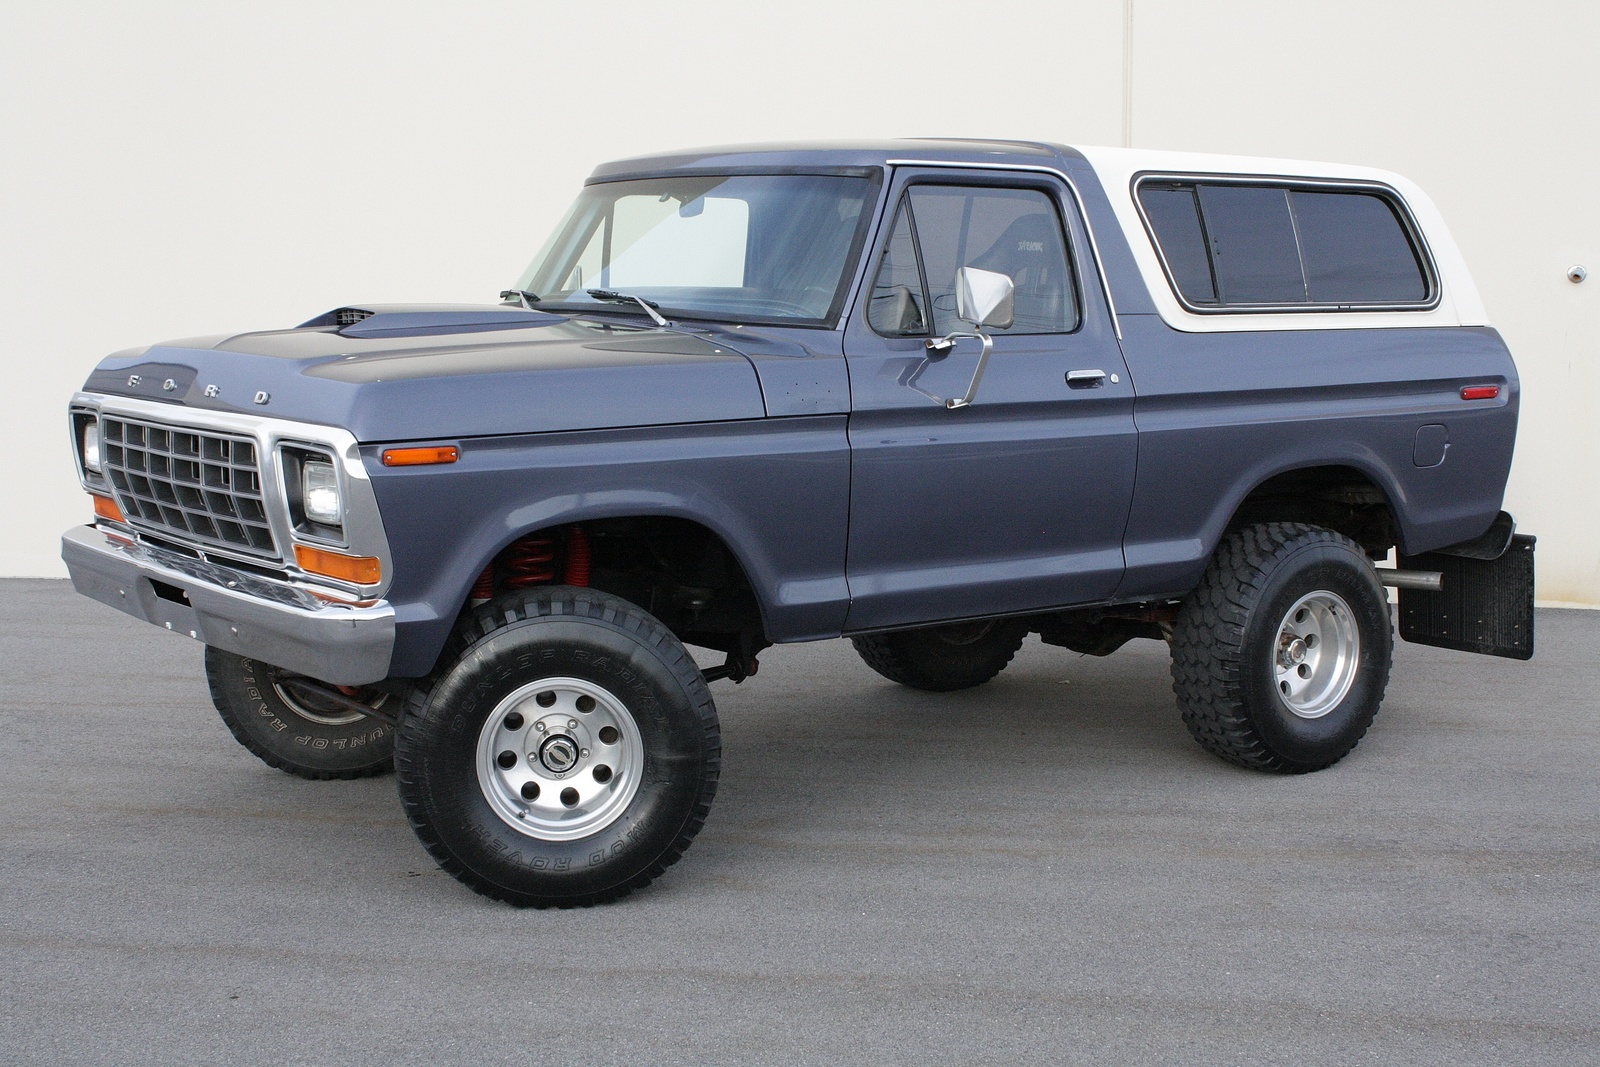 Looking for a Used Bronco in your area?